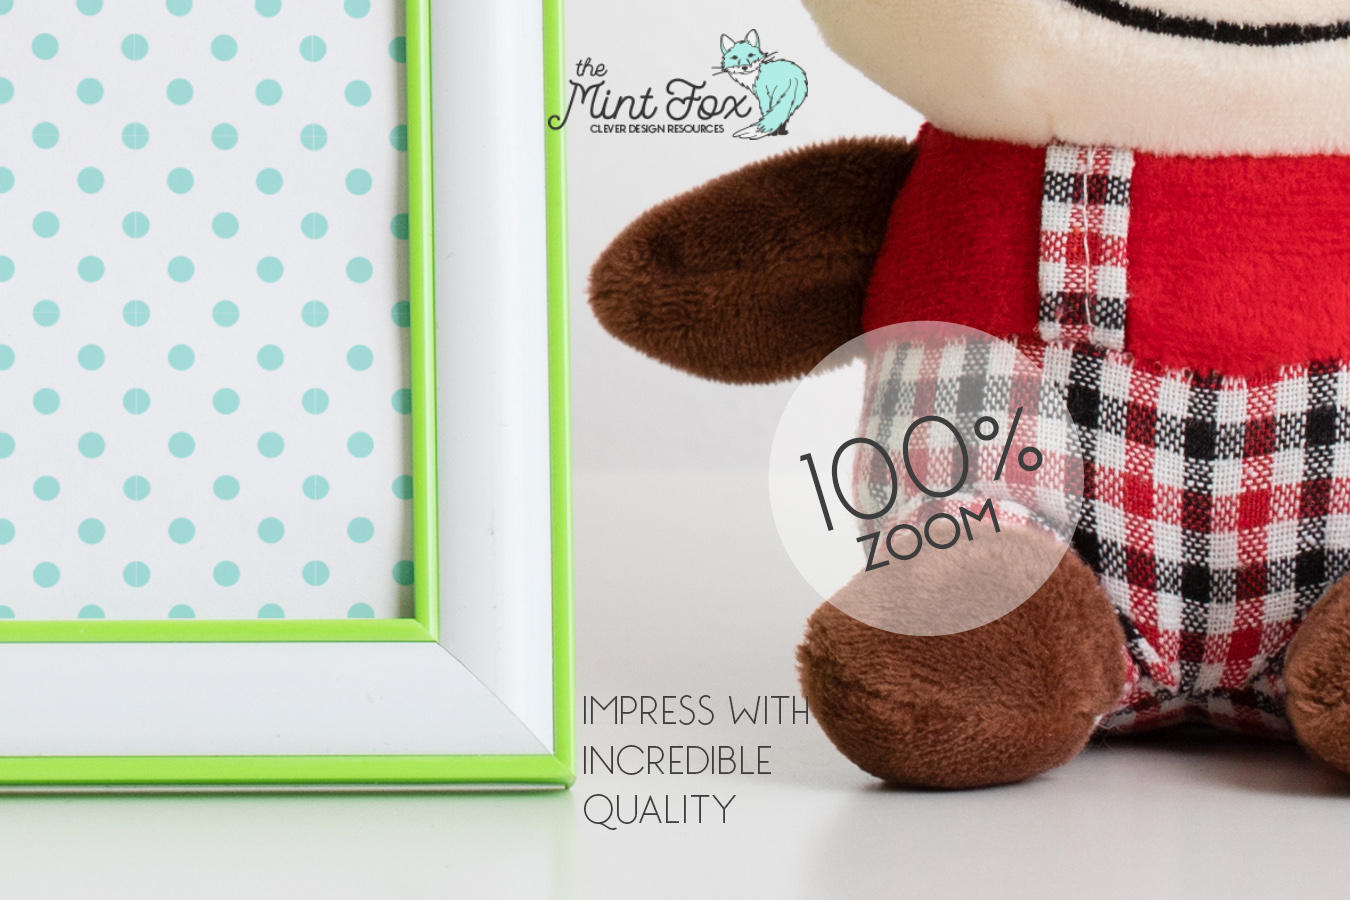 Children Photo Frame Mockup with Toys| Nursery Mock Up example image 3